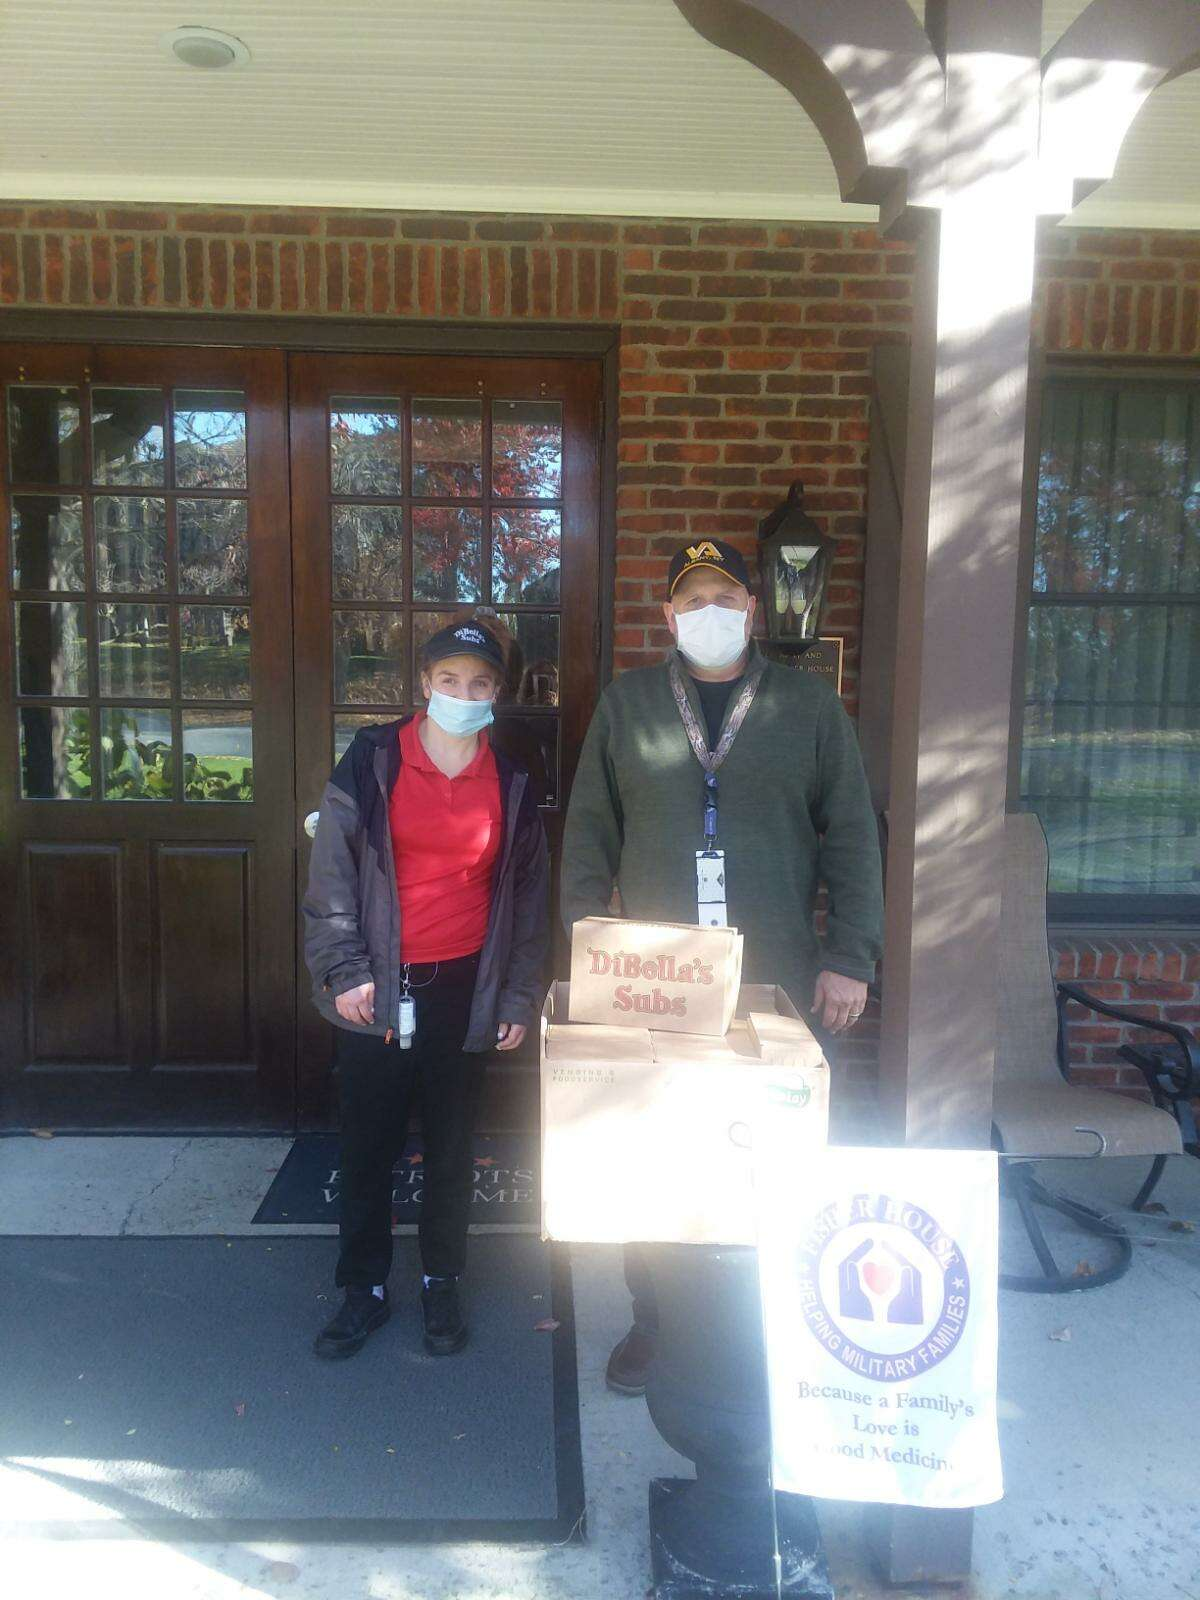 DiBella's Subs donated and delivered the first round of boxed lunches to Fisher House at the Albany Stratton VA Medical Center to feed veterans and their families staying at the house.